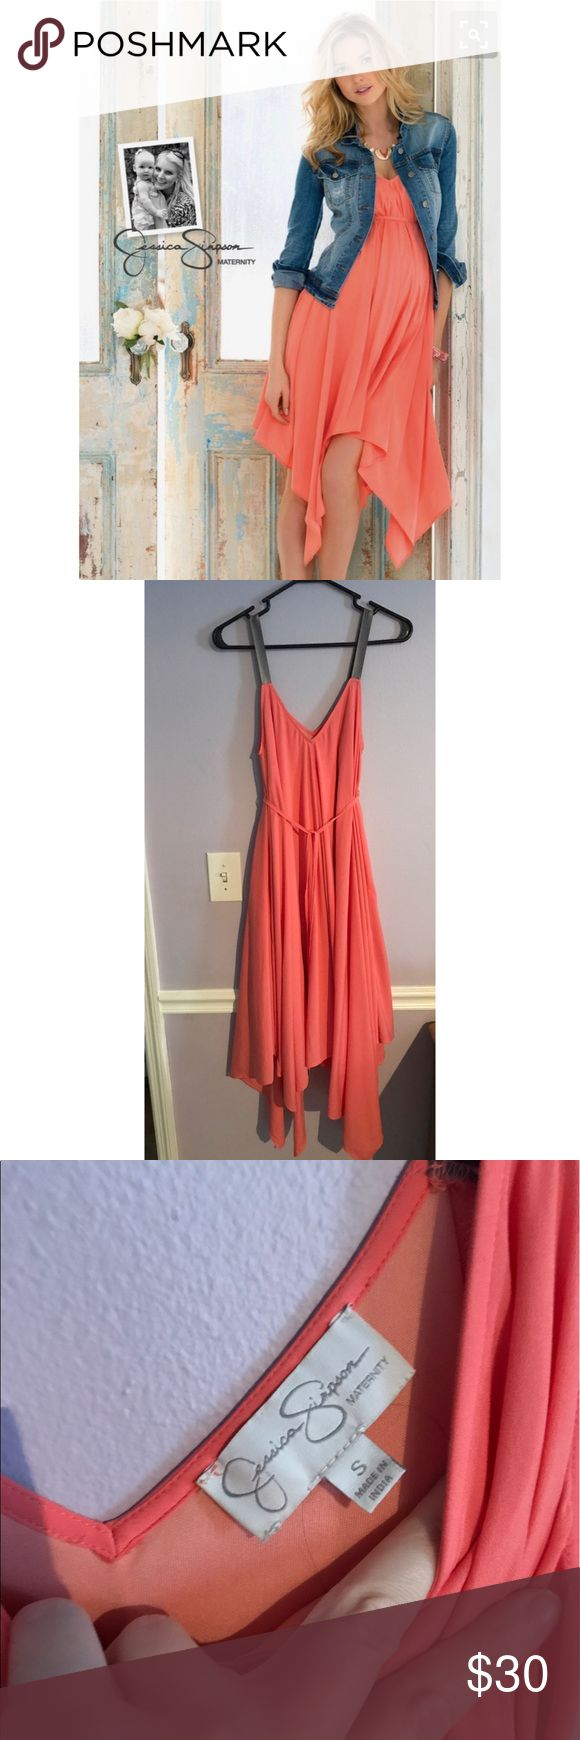 Jessica Simpson Maternity Dress Gorgeous coral with glimmering silver straps. Handkerchief style bottom. Jessica Simpson Dresses